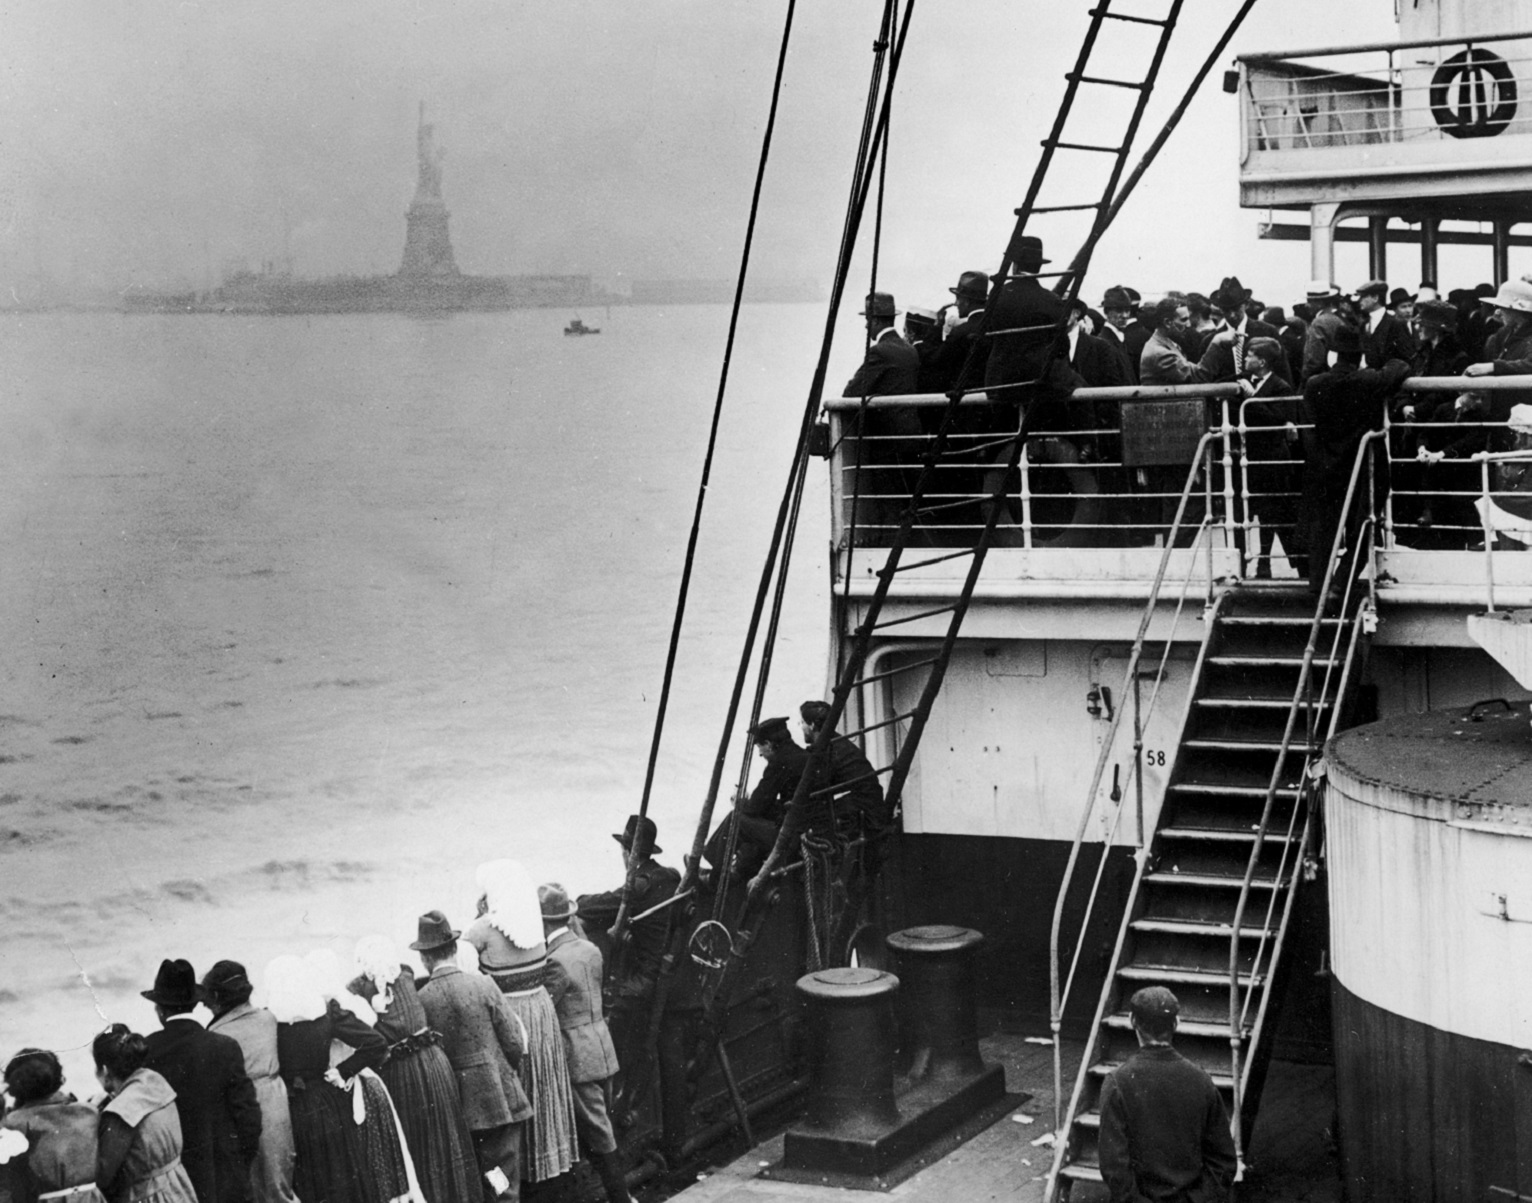 A History Of Immigration Reform